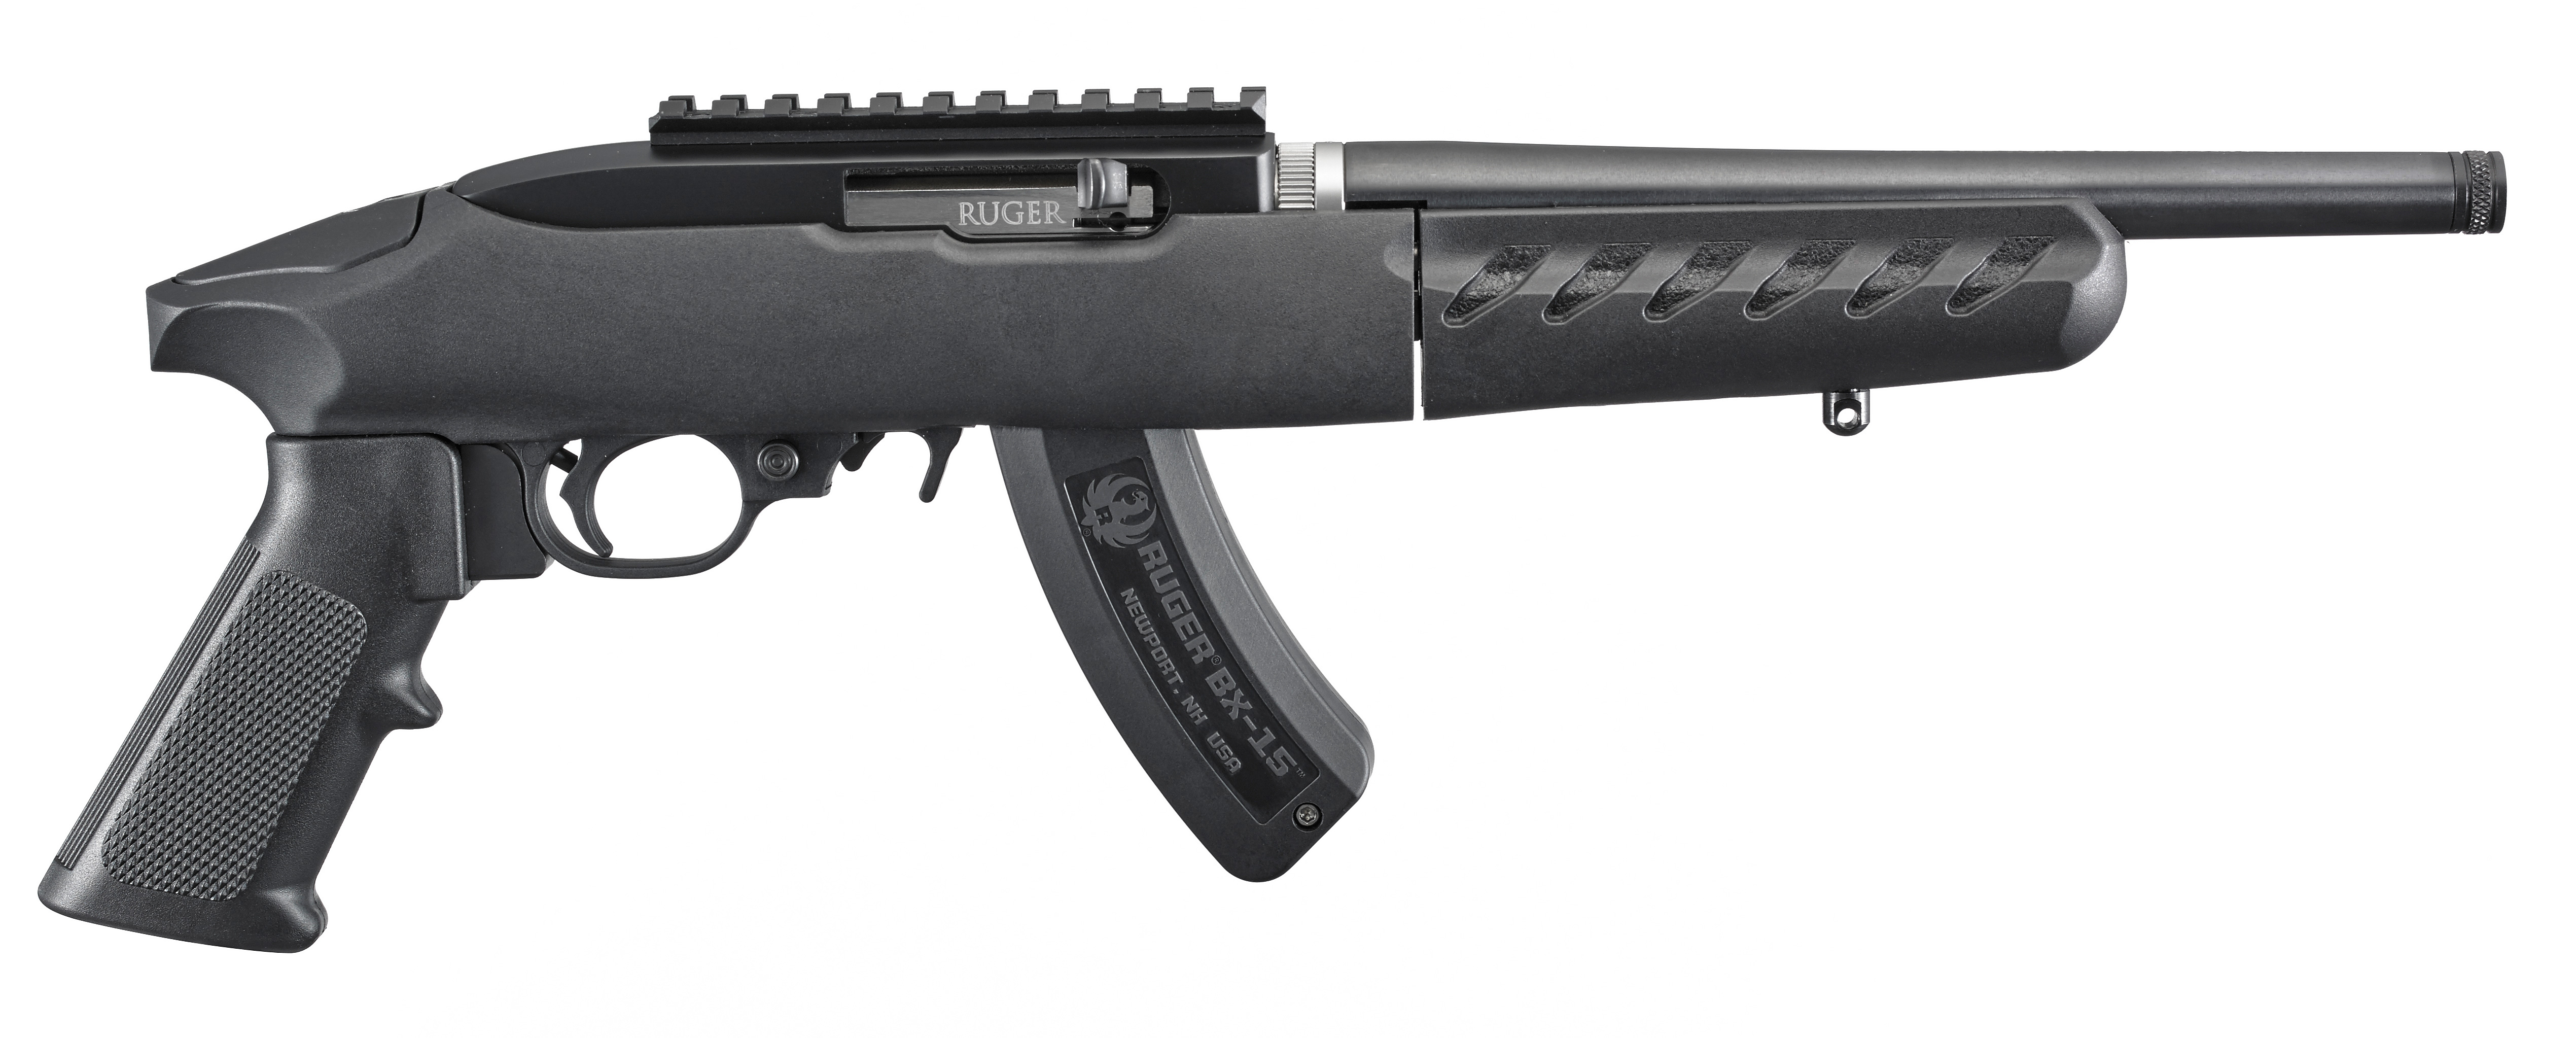 Ruger Charger Takedown Model 22 LR Pistol With BX-15 15-Round Magazine